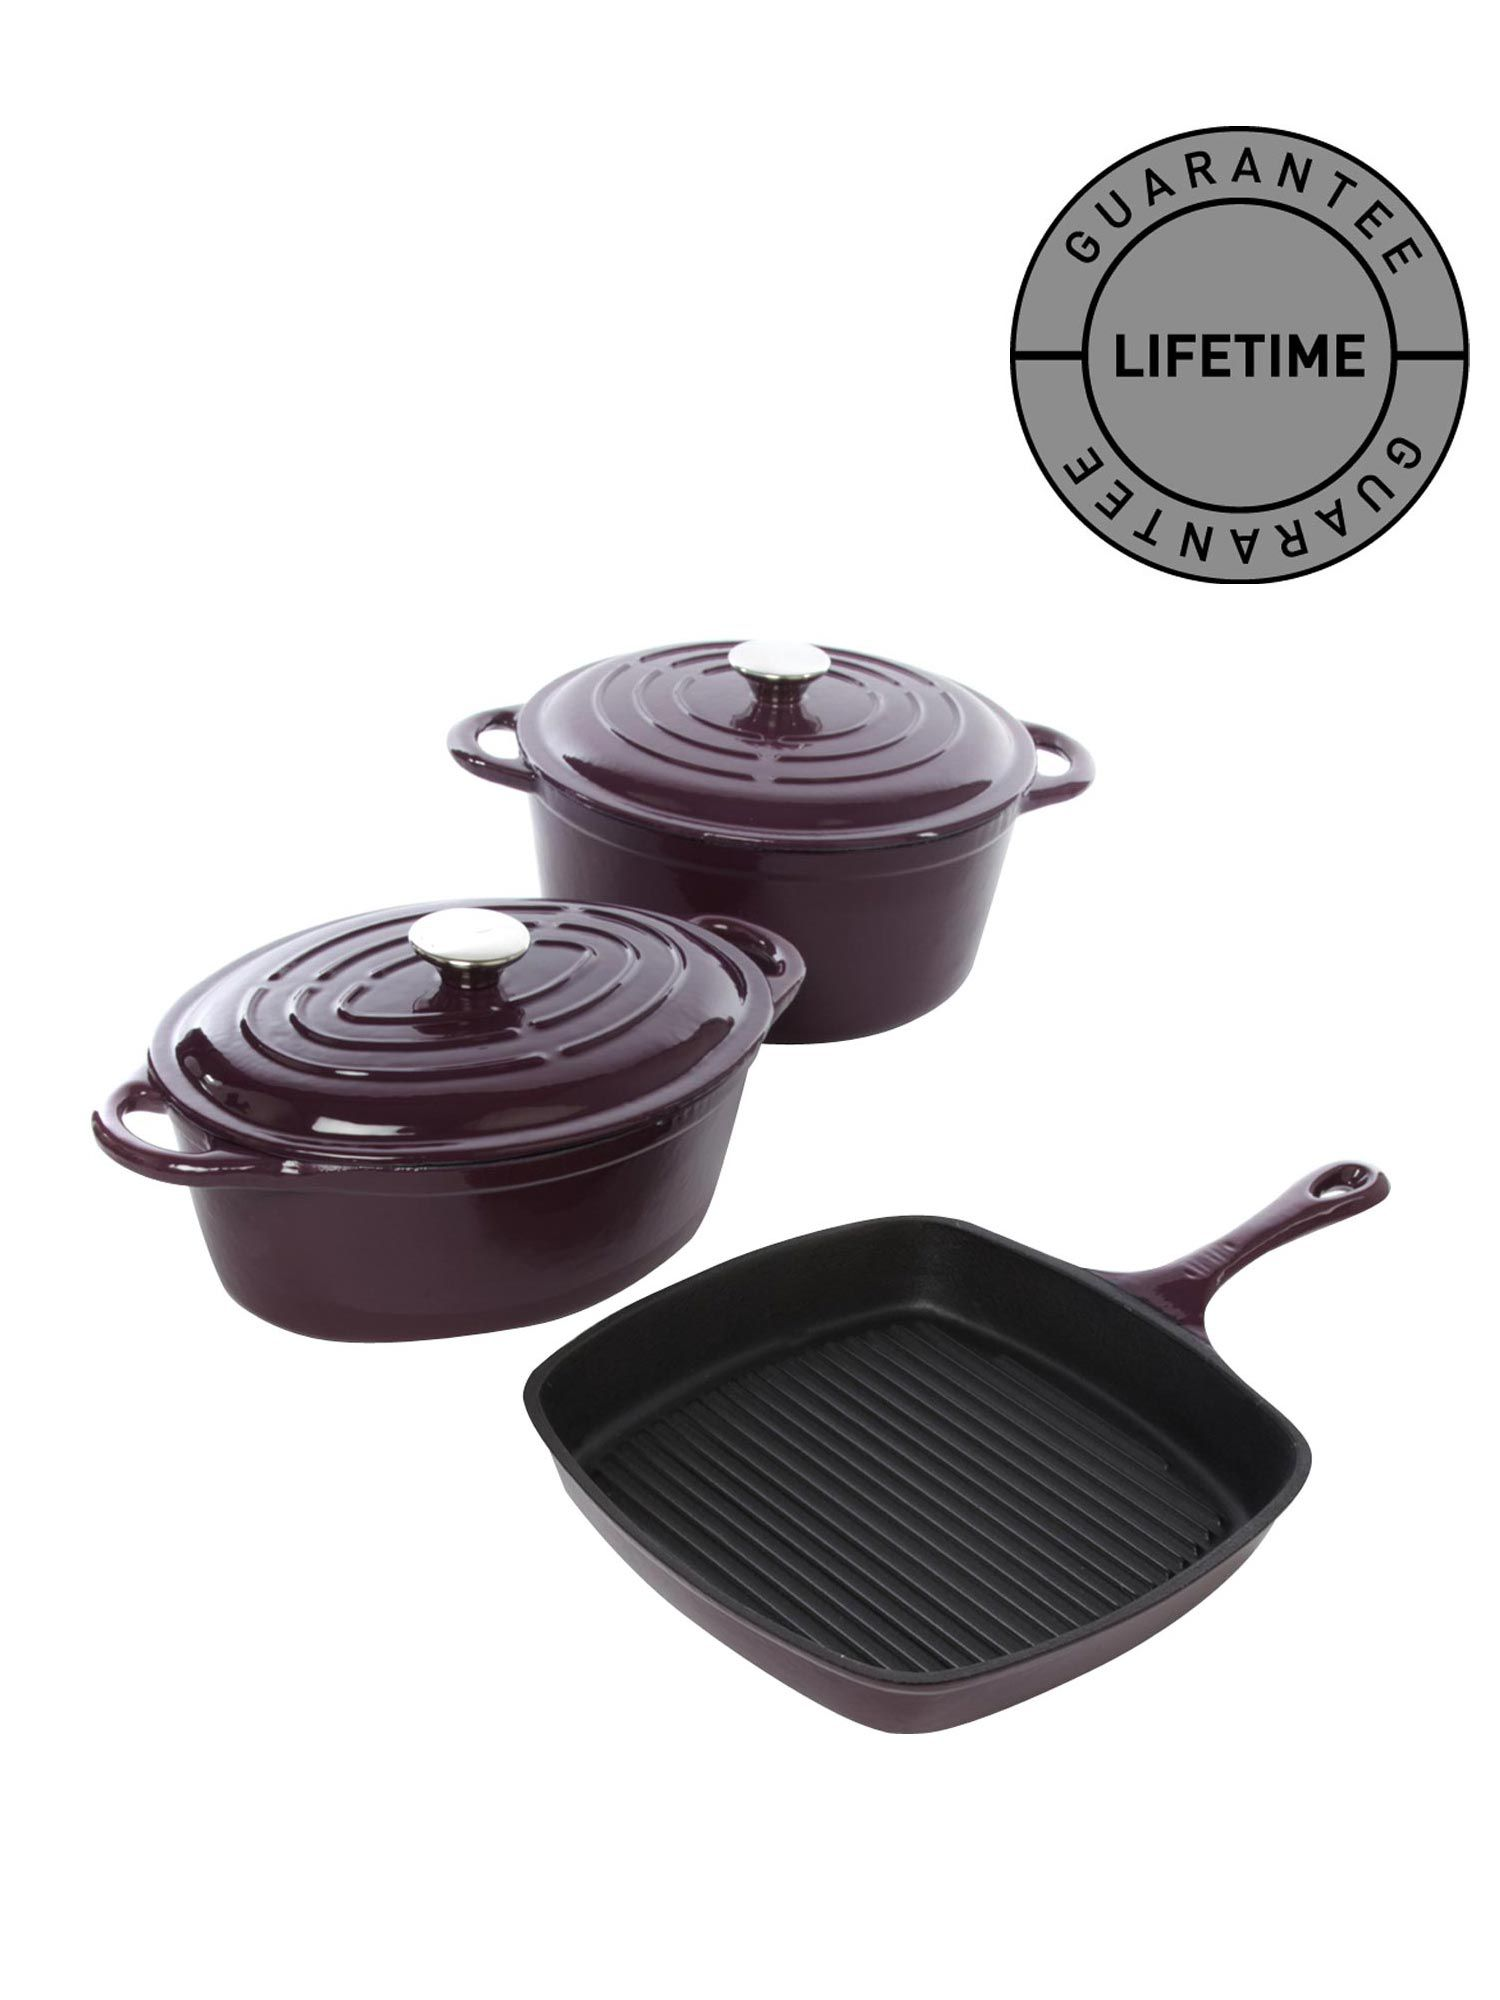 Cast iron cookware in aubergine